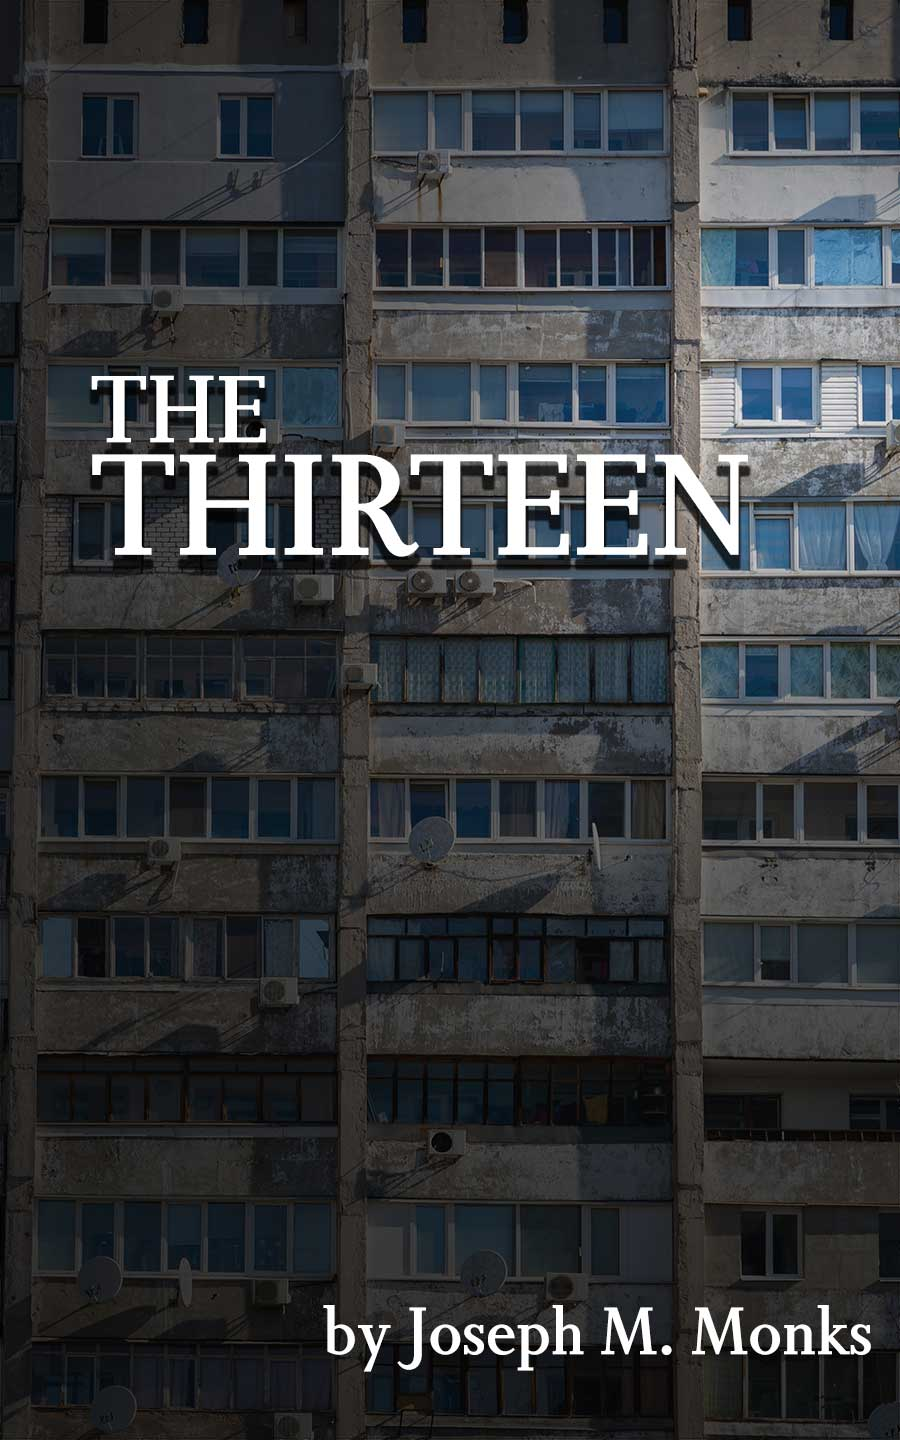 Cover to The Thirteen. An old high rise apartment building that looks nearly abandoned